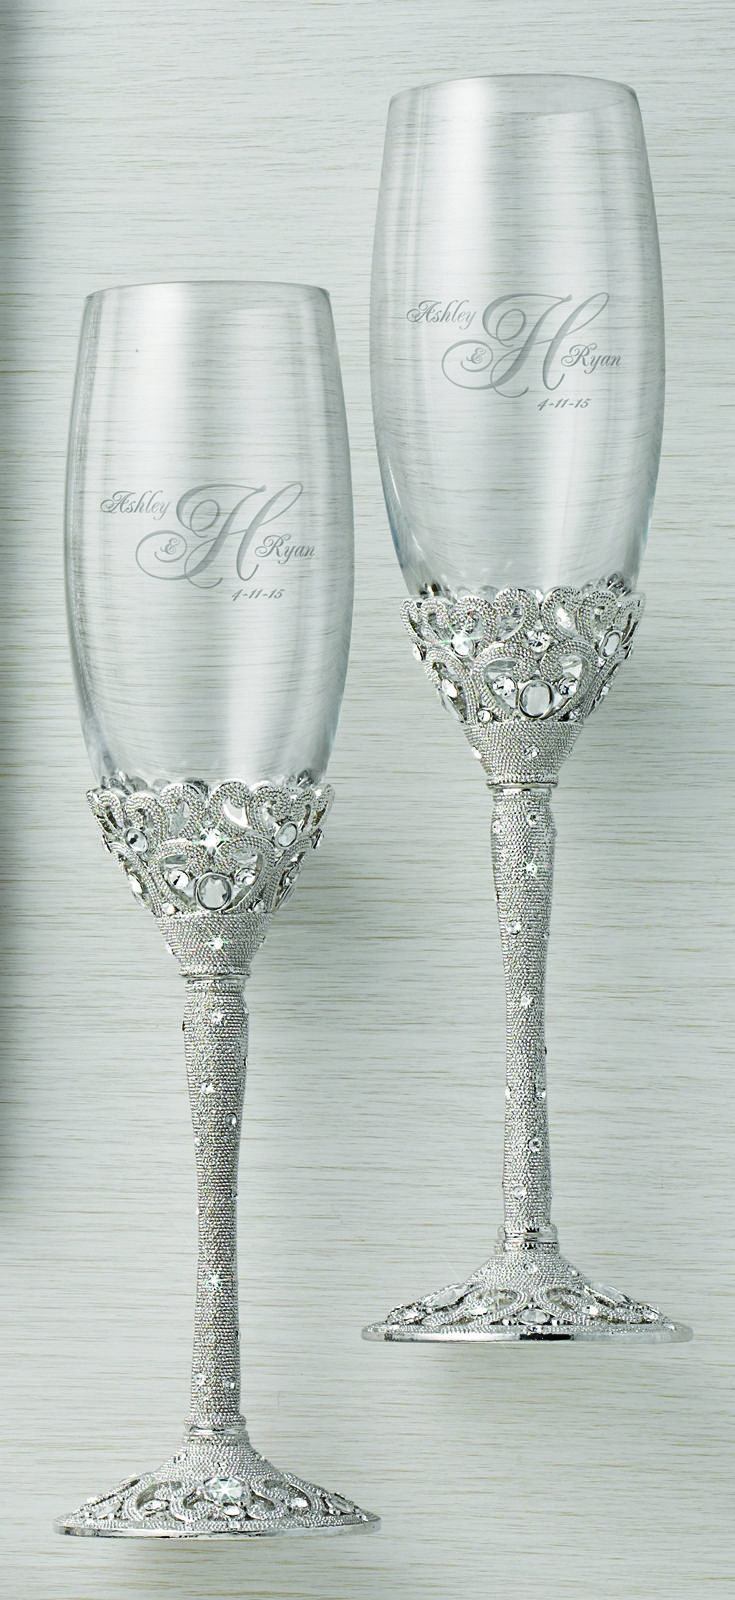 These Madison Avenue champagne flutes come with the matching cake server set! Personalize them just for your wedding! #ThingsRemembered